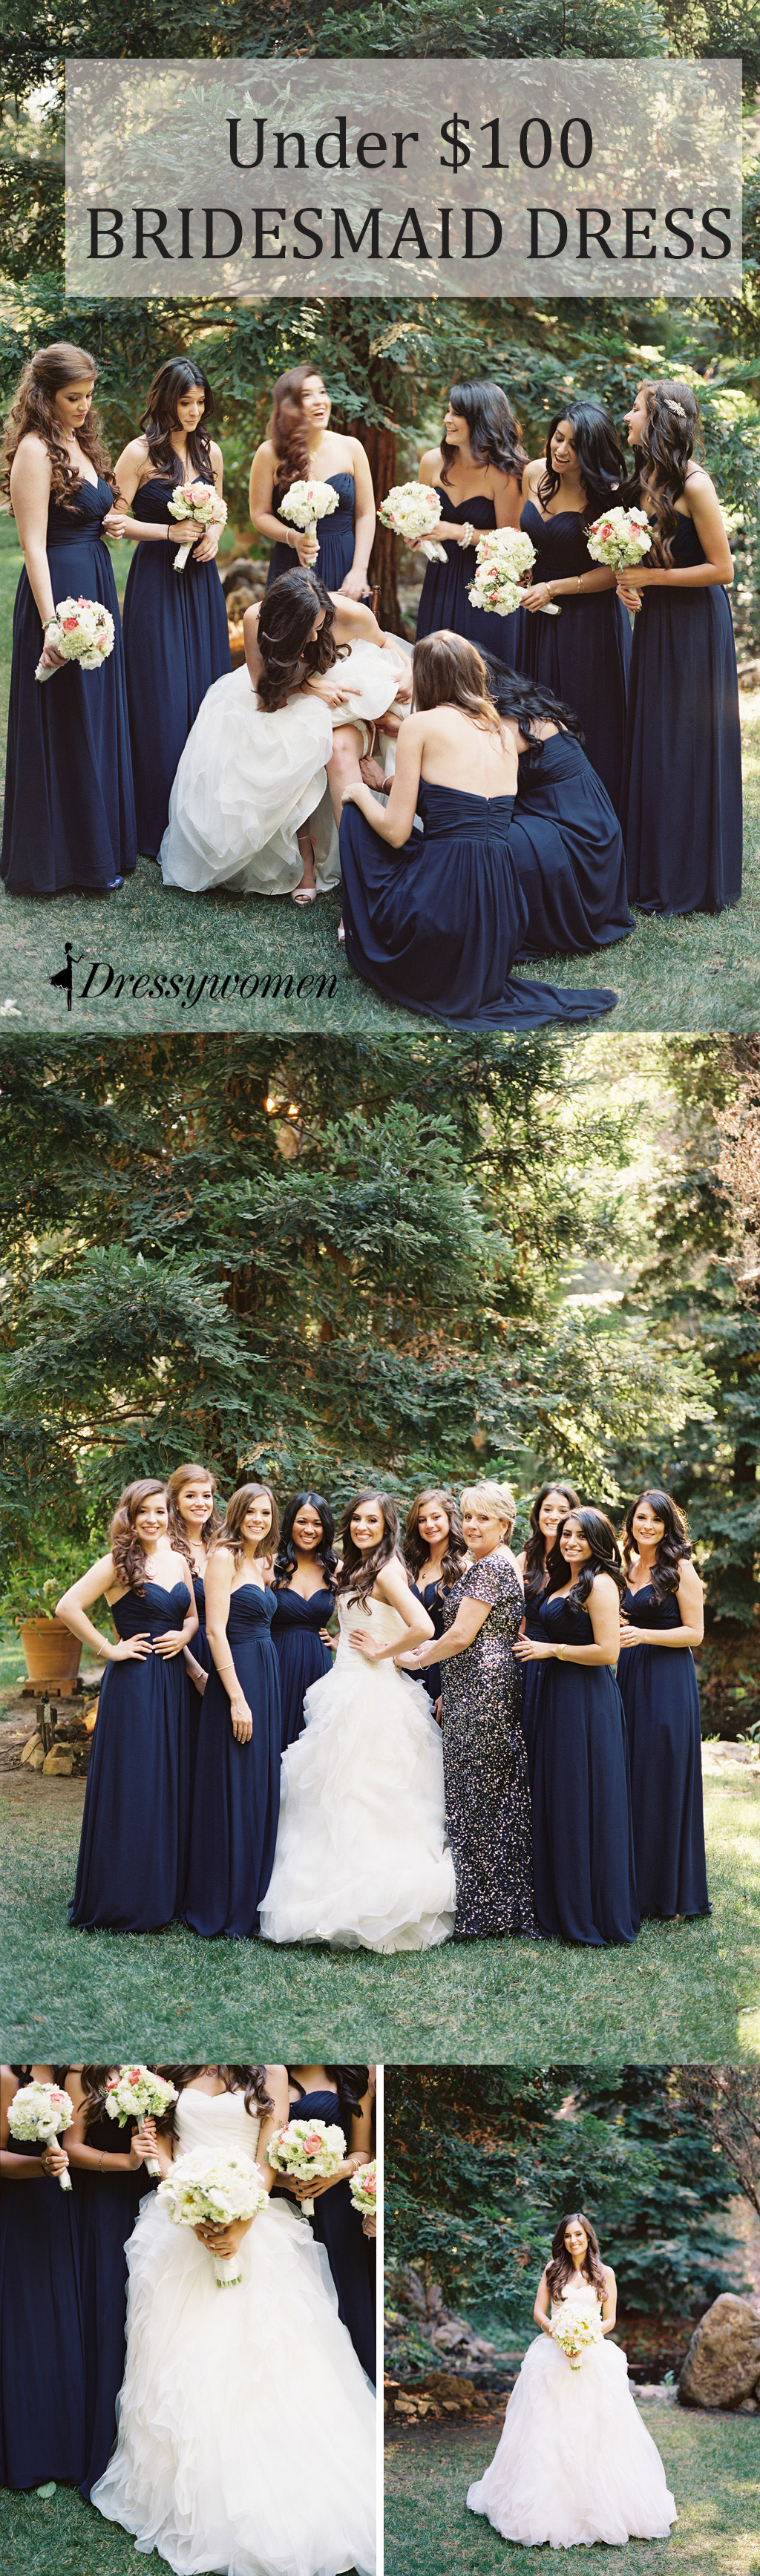 2016 navy strapless long chiffon bridesmaid dresses cheap 2016 navy strapless long chiffon bridesmaid dresses cheap bridesmaid dresses under 100 ombrellifo Images